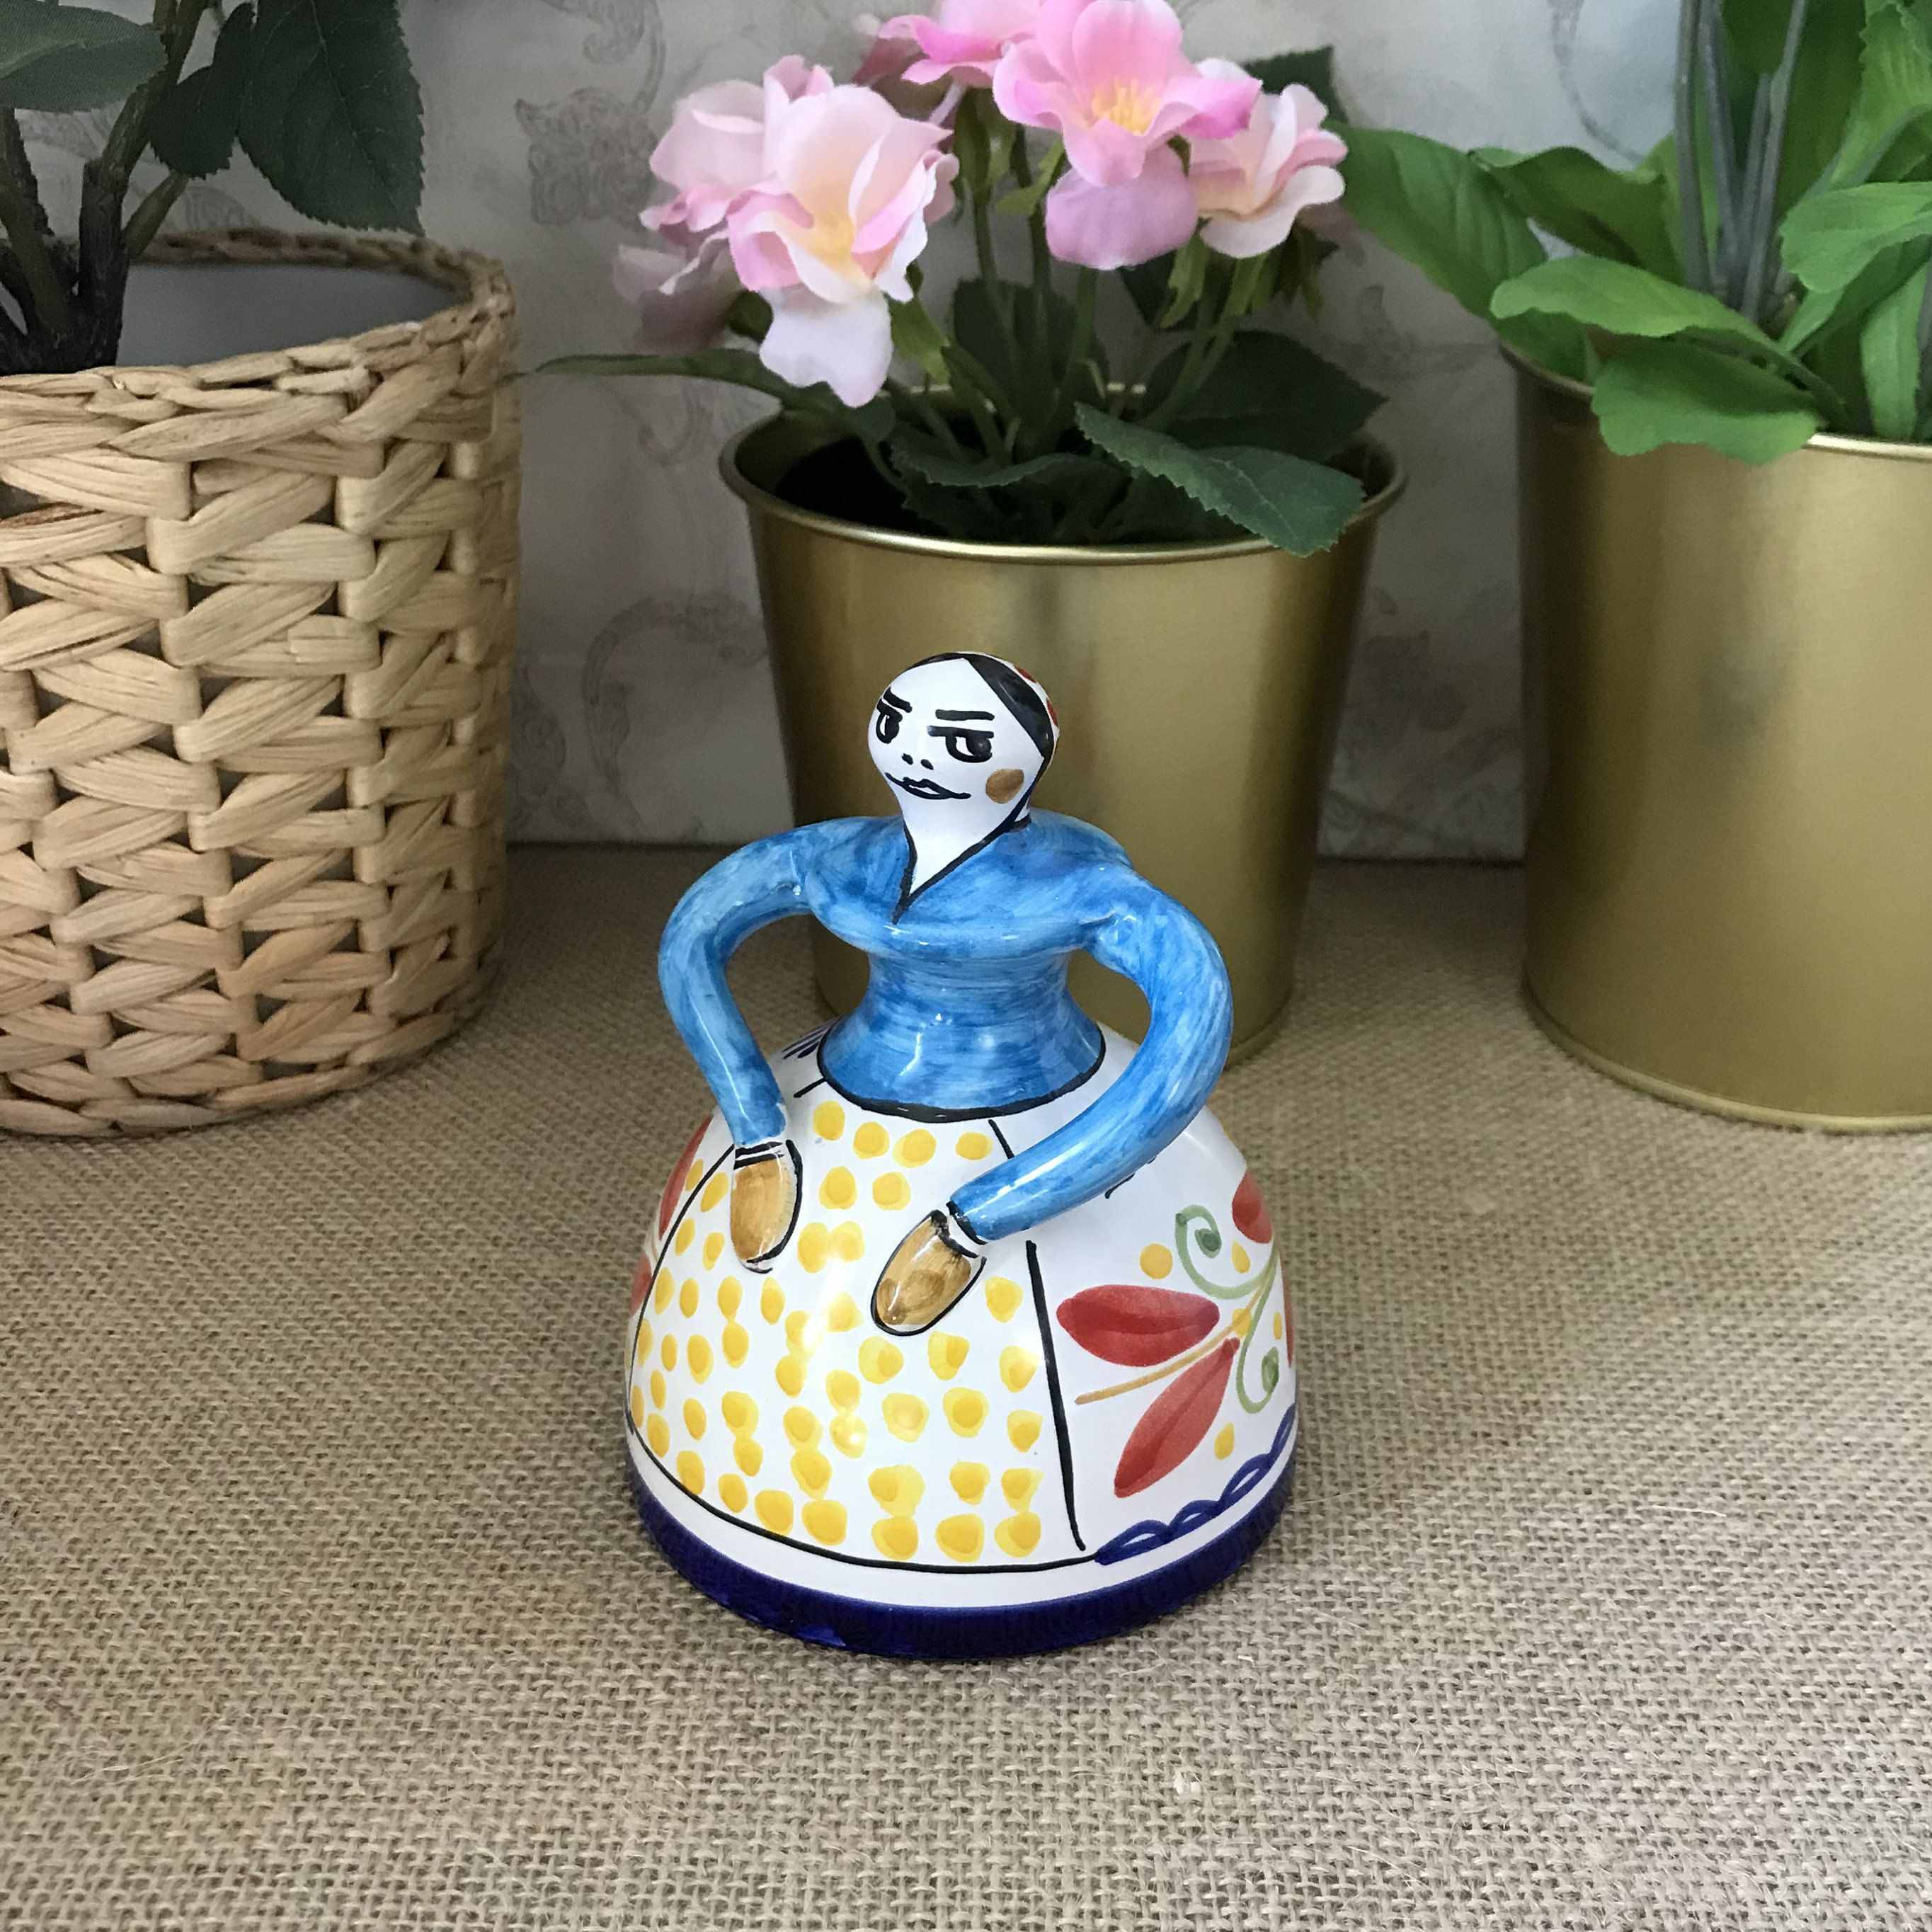 Sevilla Pottery Bell, Ceramic Lady Bell, Lady Figurine Bell, Vintage Souvenir Bell, Hand Painted Woman Bell, Sevilla Bell, Collectible Bell #preguntassevilla